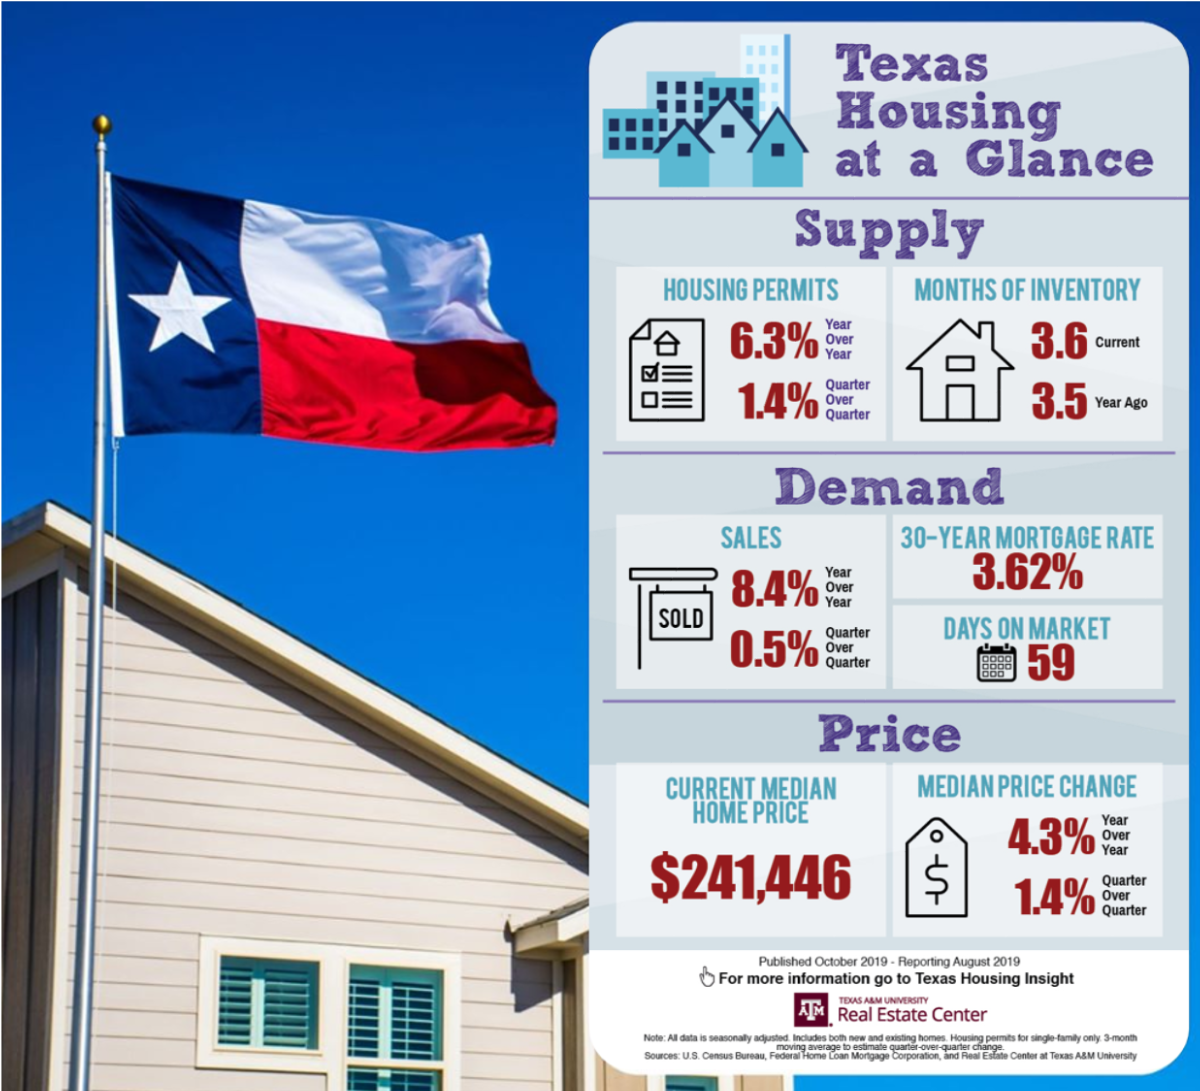 Texas Housing at a Glance